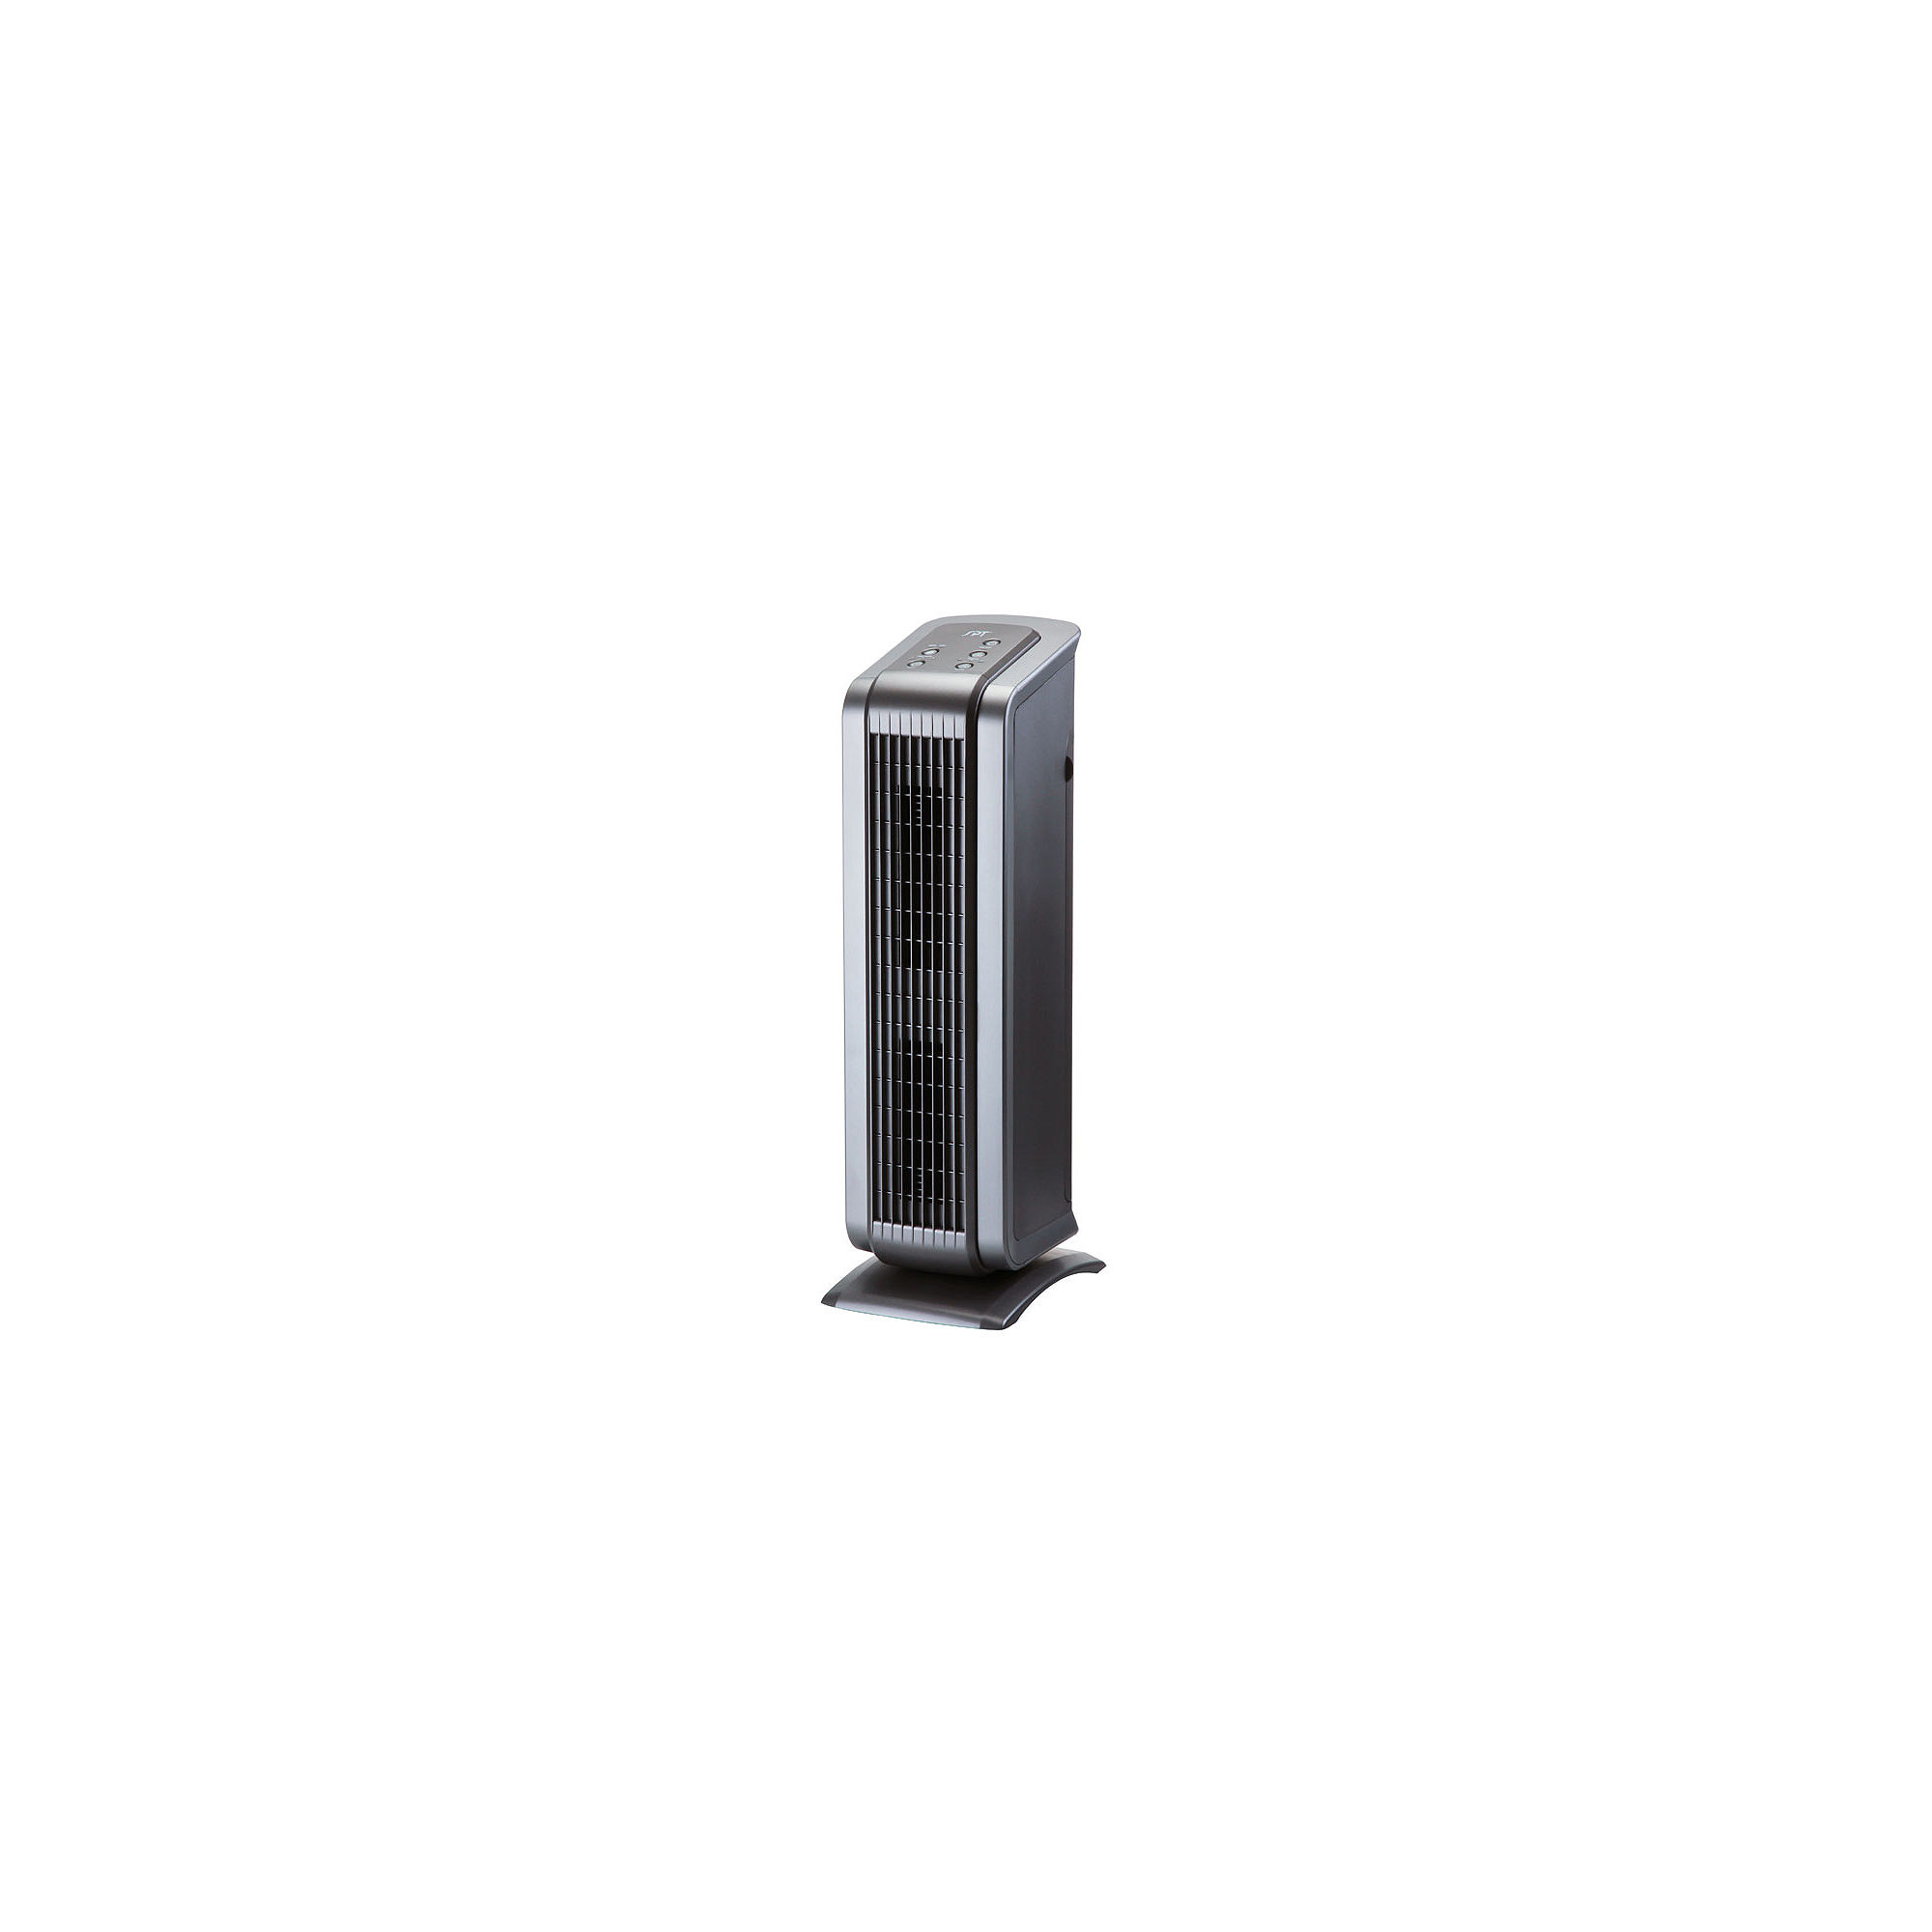 SPT AC-2062: Tower HEPA/VOC Air Cleaner with Ionizer